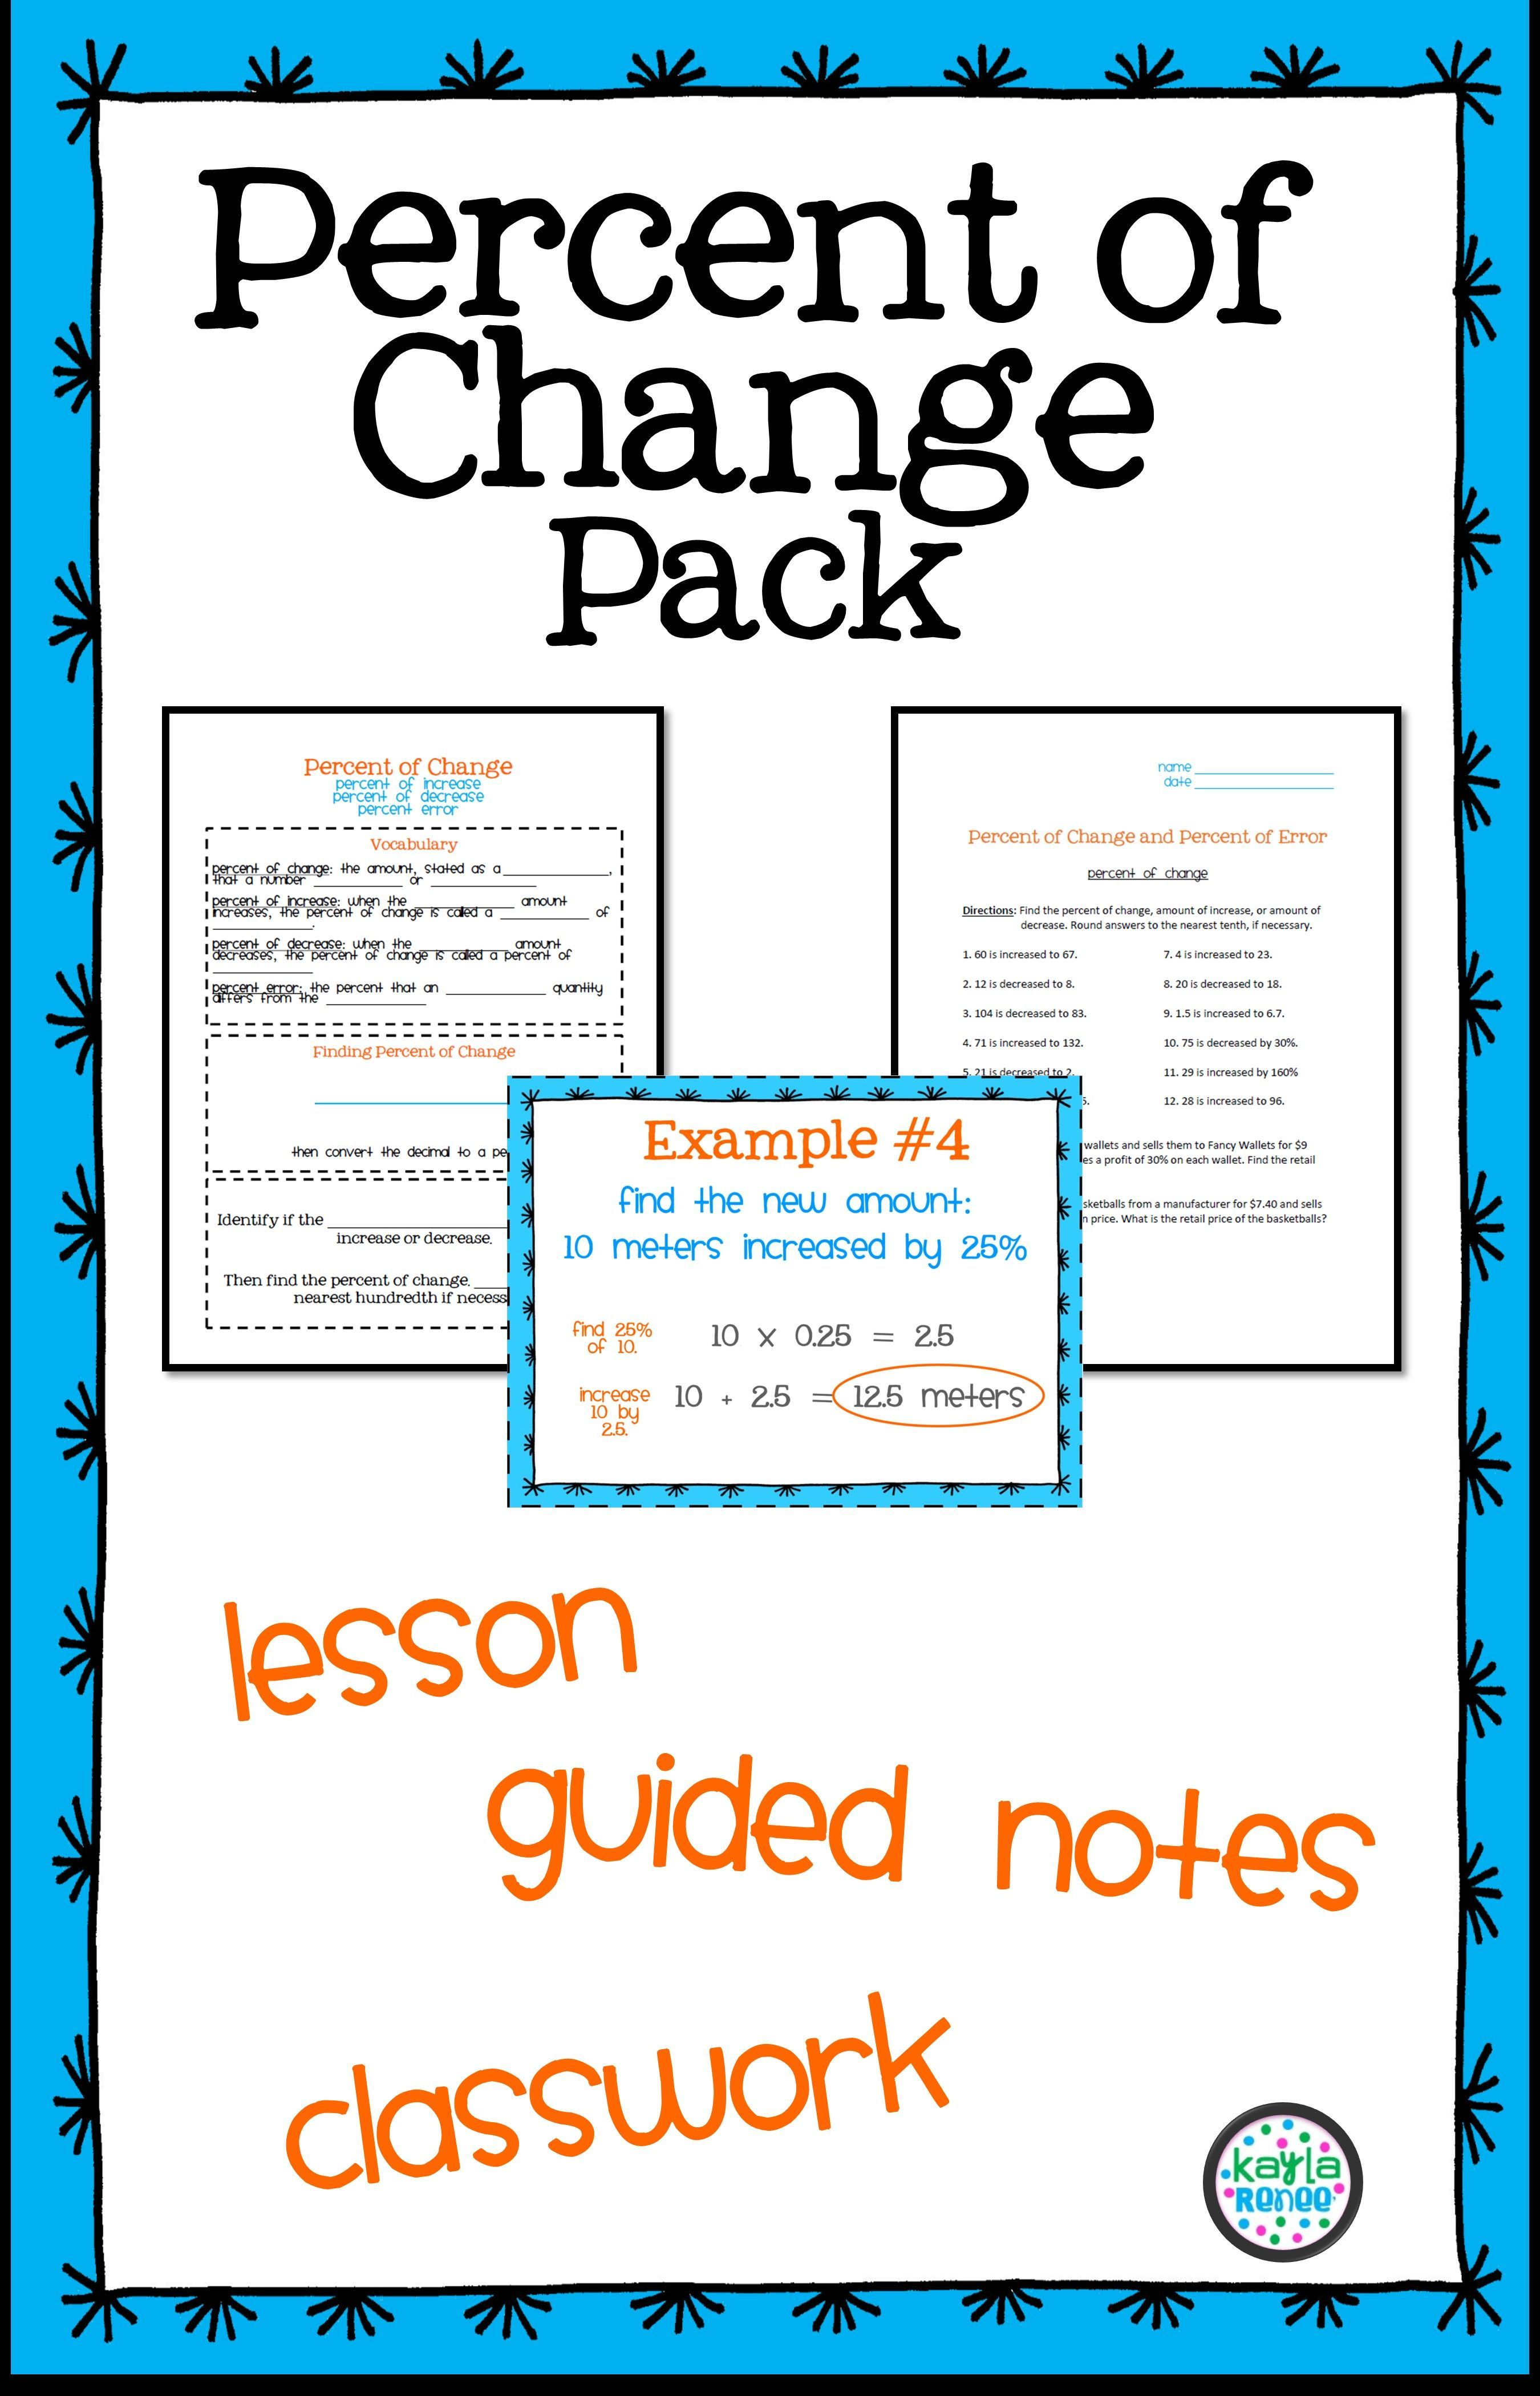 Percent Of Change Pack 7 Rp 3 Middle School Math Resources Percent Of Change Middle School Math